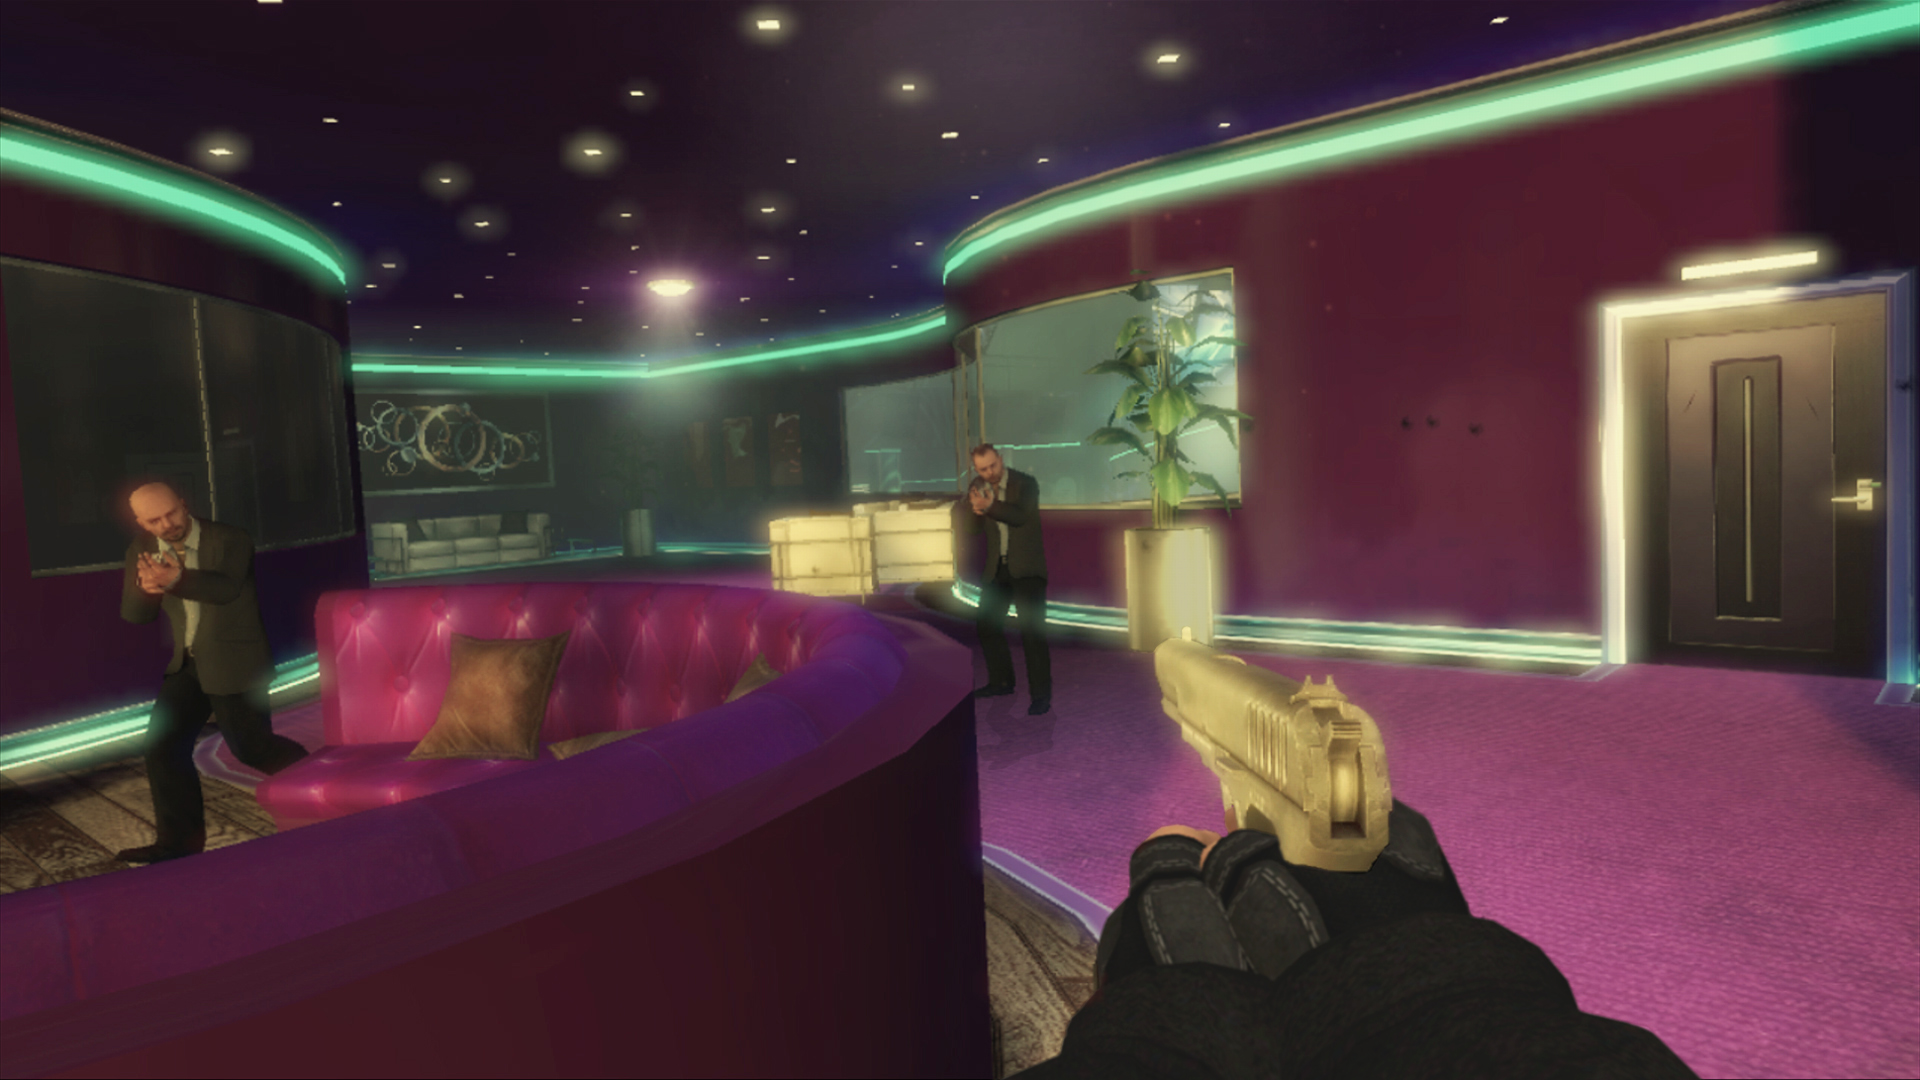 goldeneye-007-reloaded-enemies-in-night-club